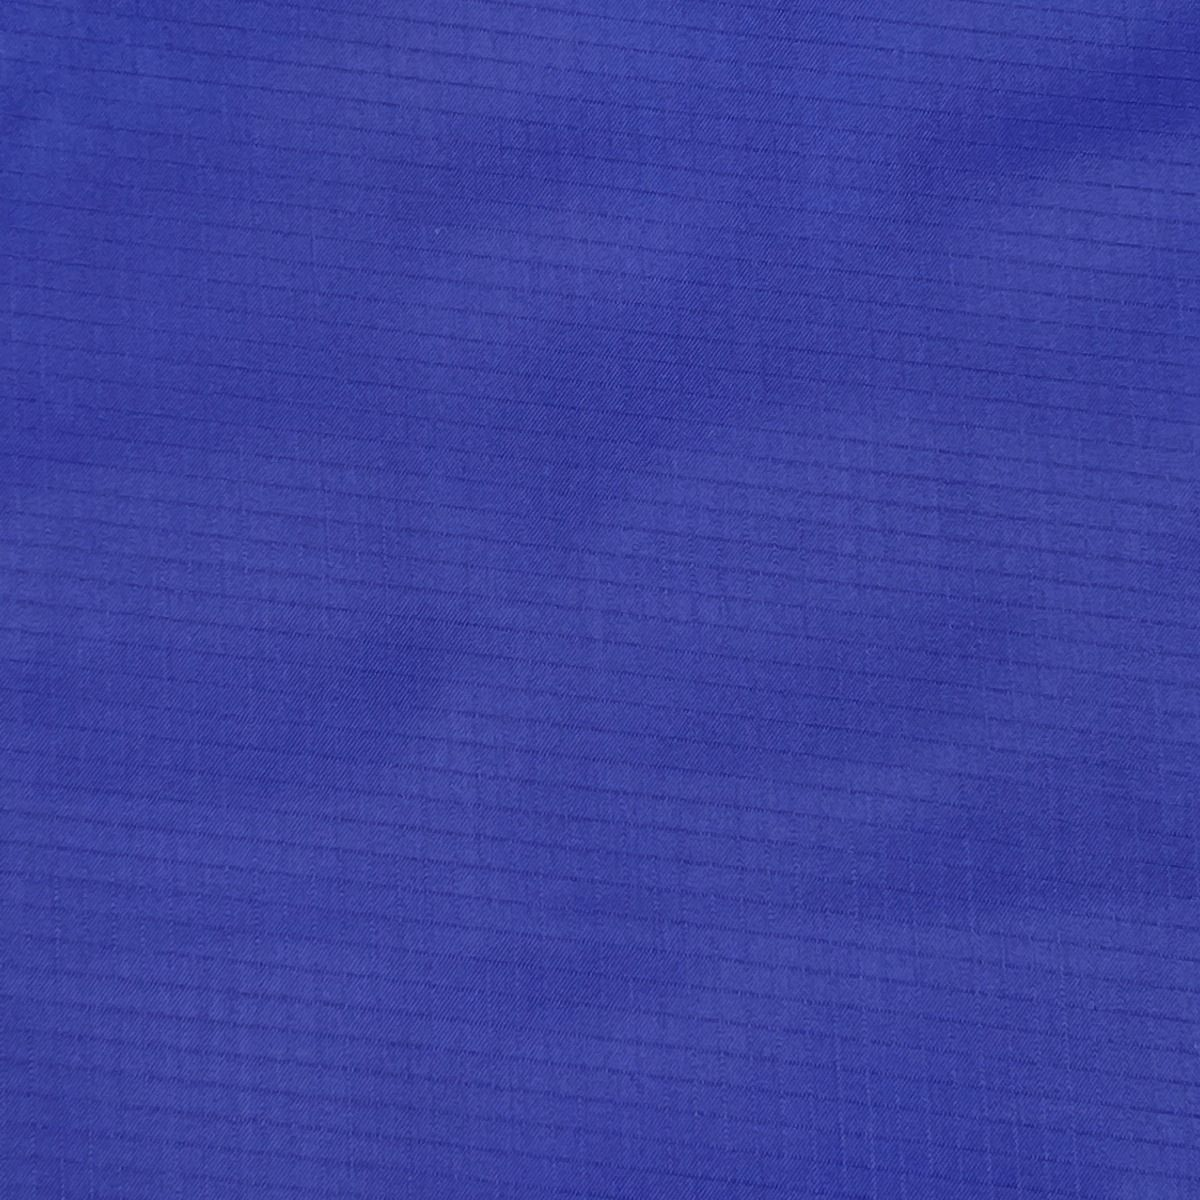 Ripstop Fabric Waterproof Material - Solid Royal Blue